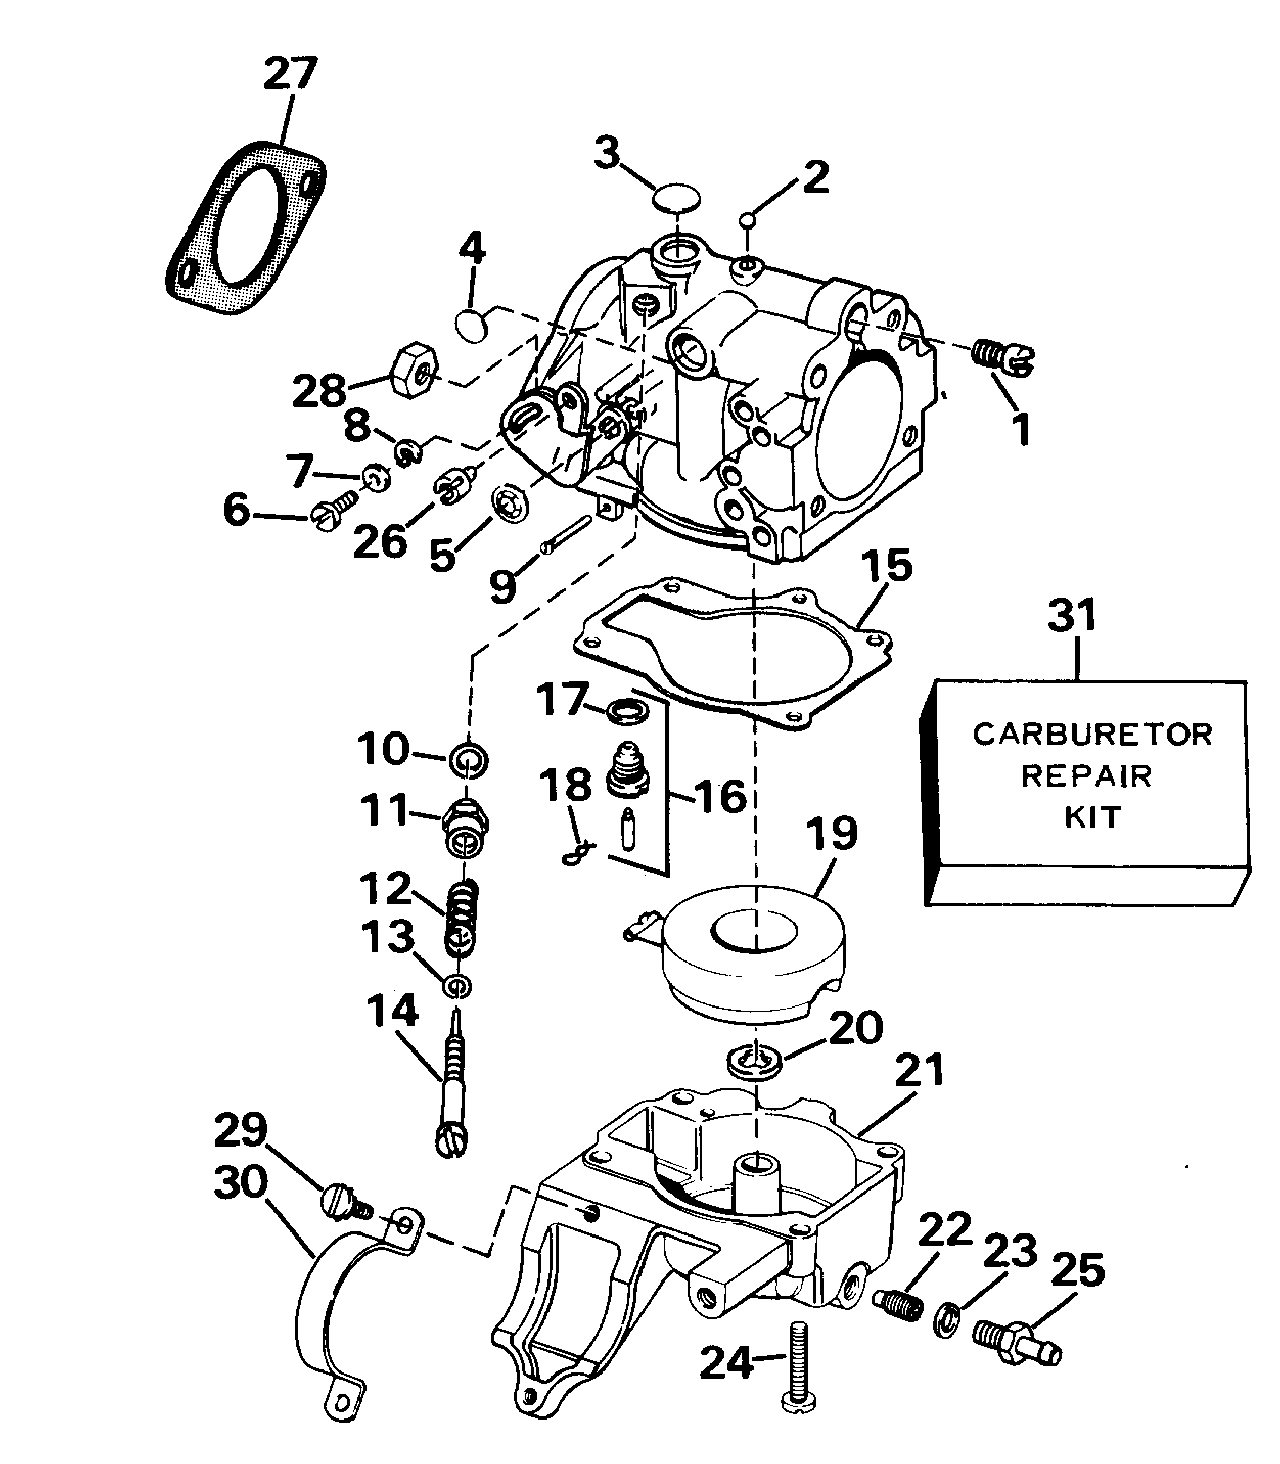 engine diagram johnson outboards